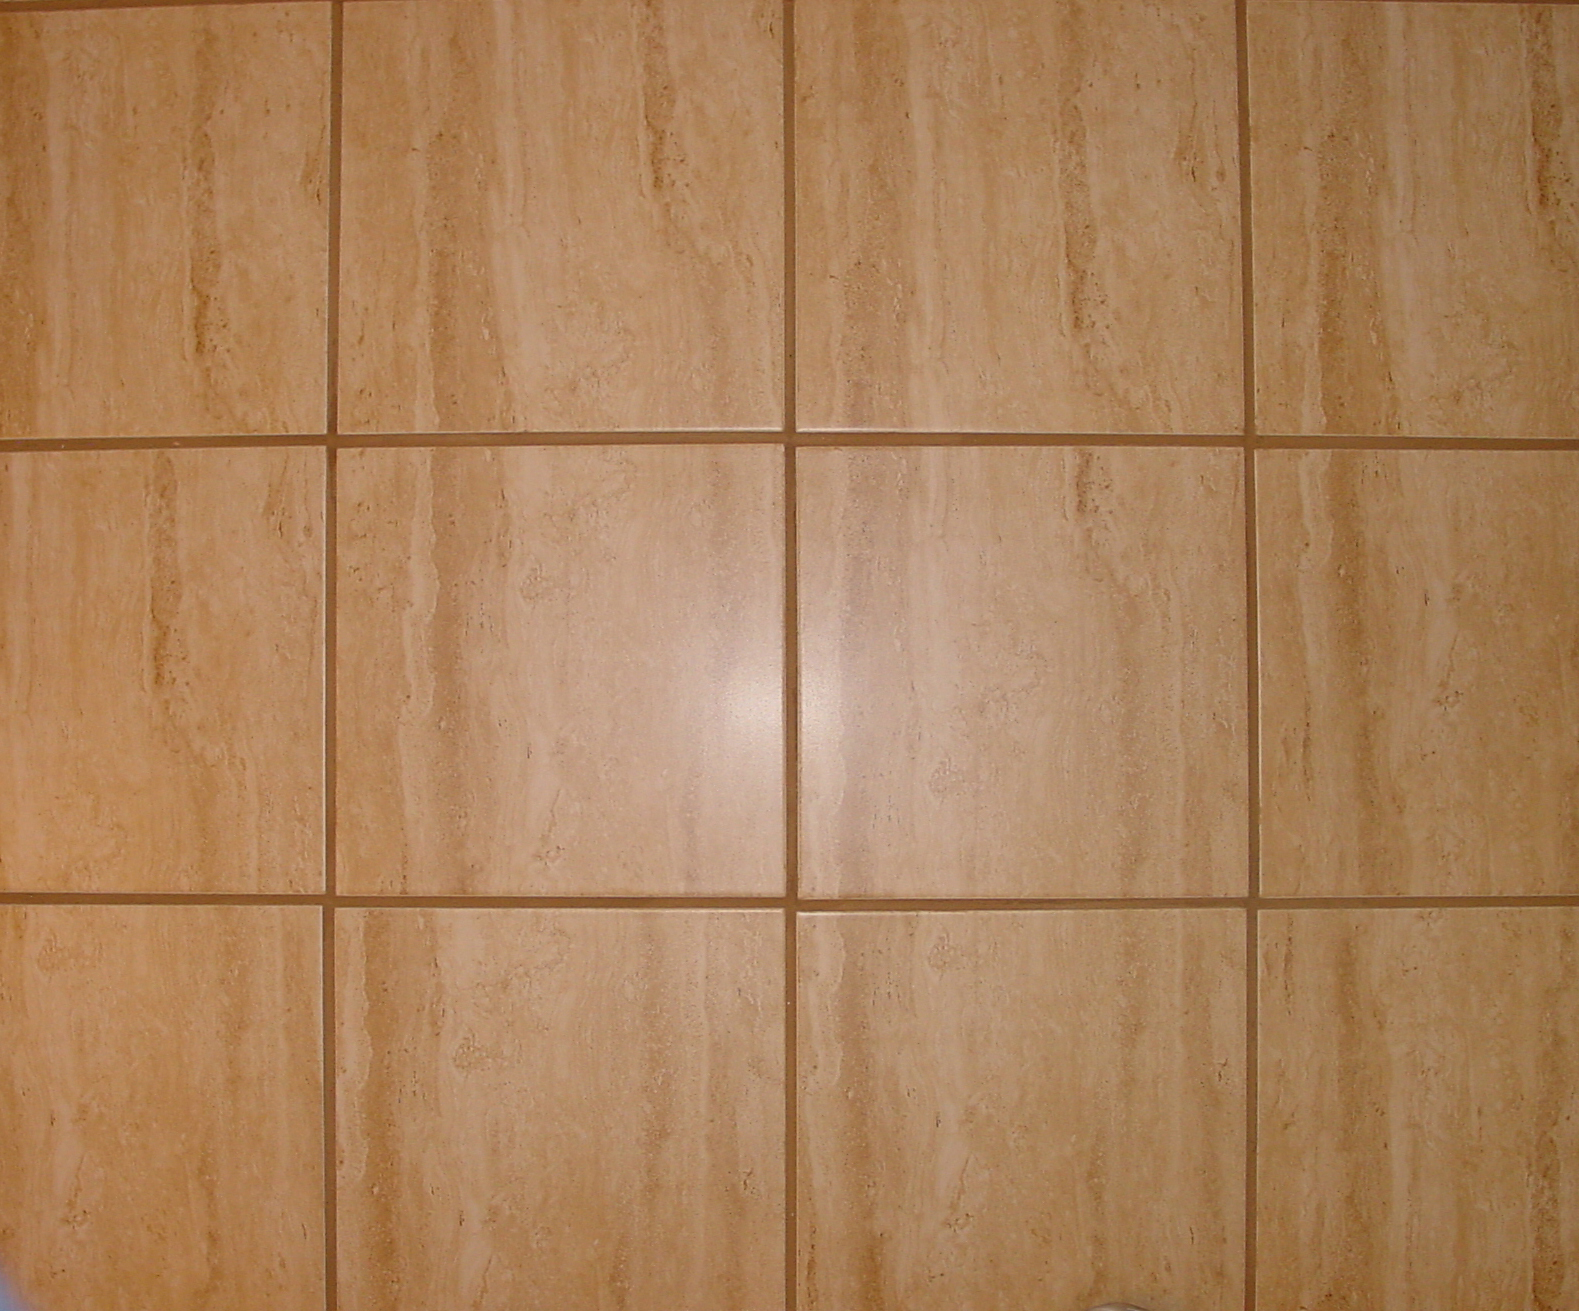 Bathroom tiles floor texture : luxury orange bathroom tiles floor